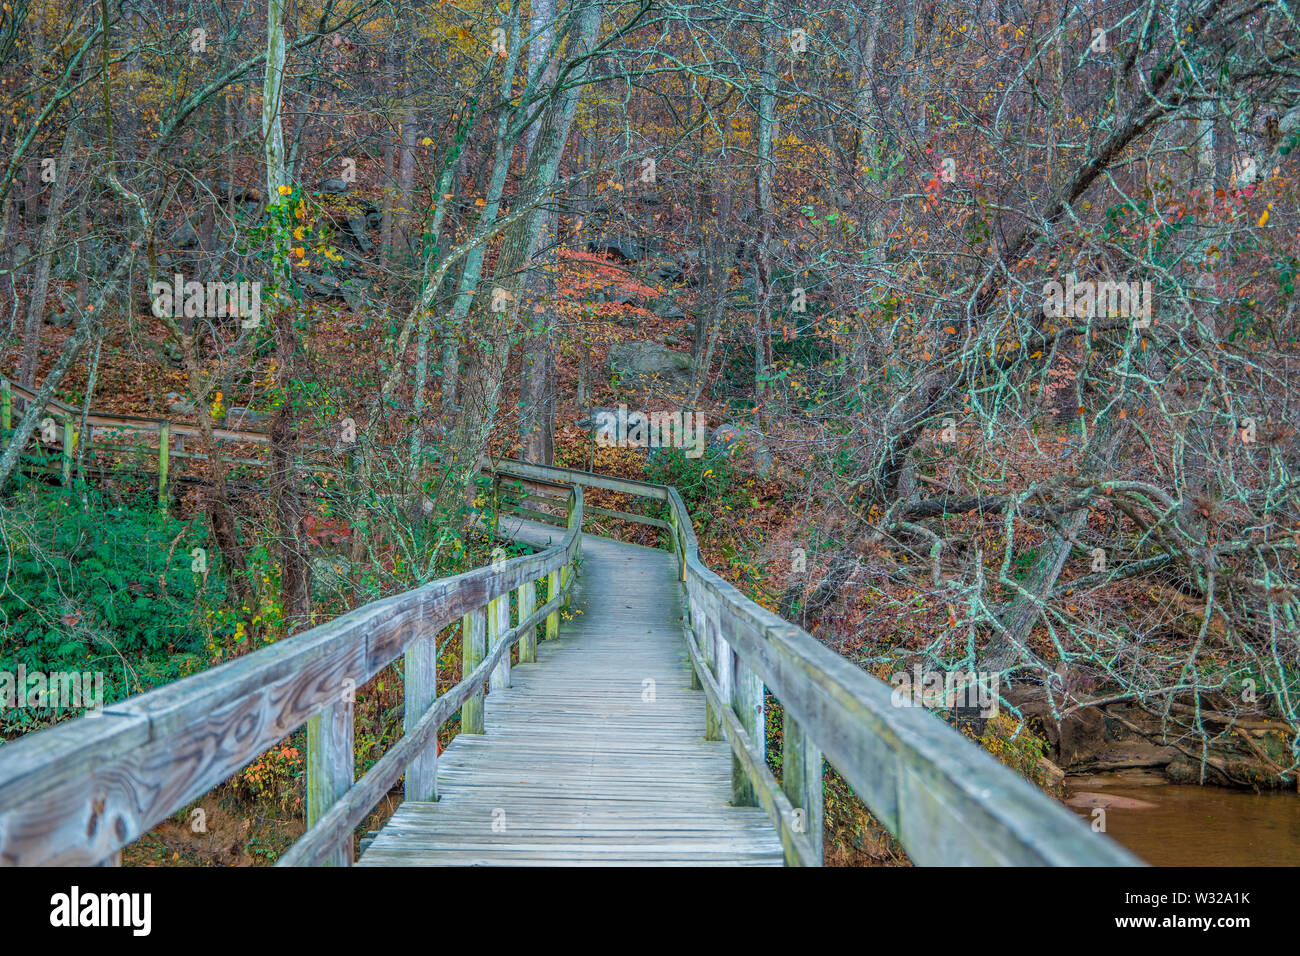 Boardwalk trail crossing over the river into the colorful forest at autumn - Stock Image